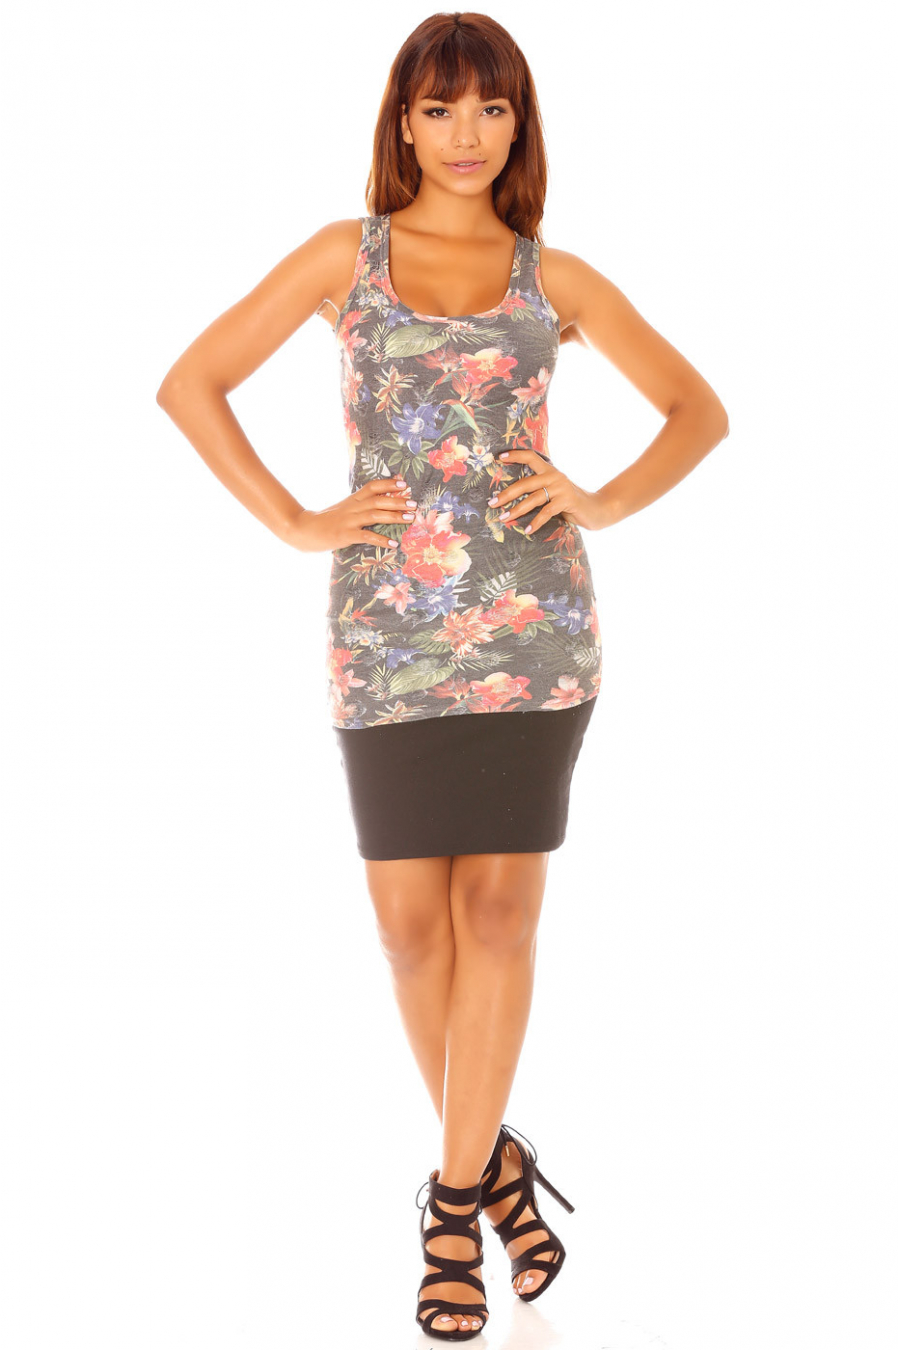 Black long tank top with flower pattern and rips